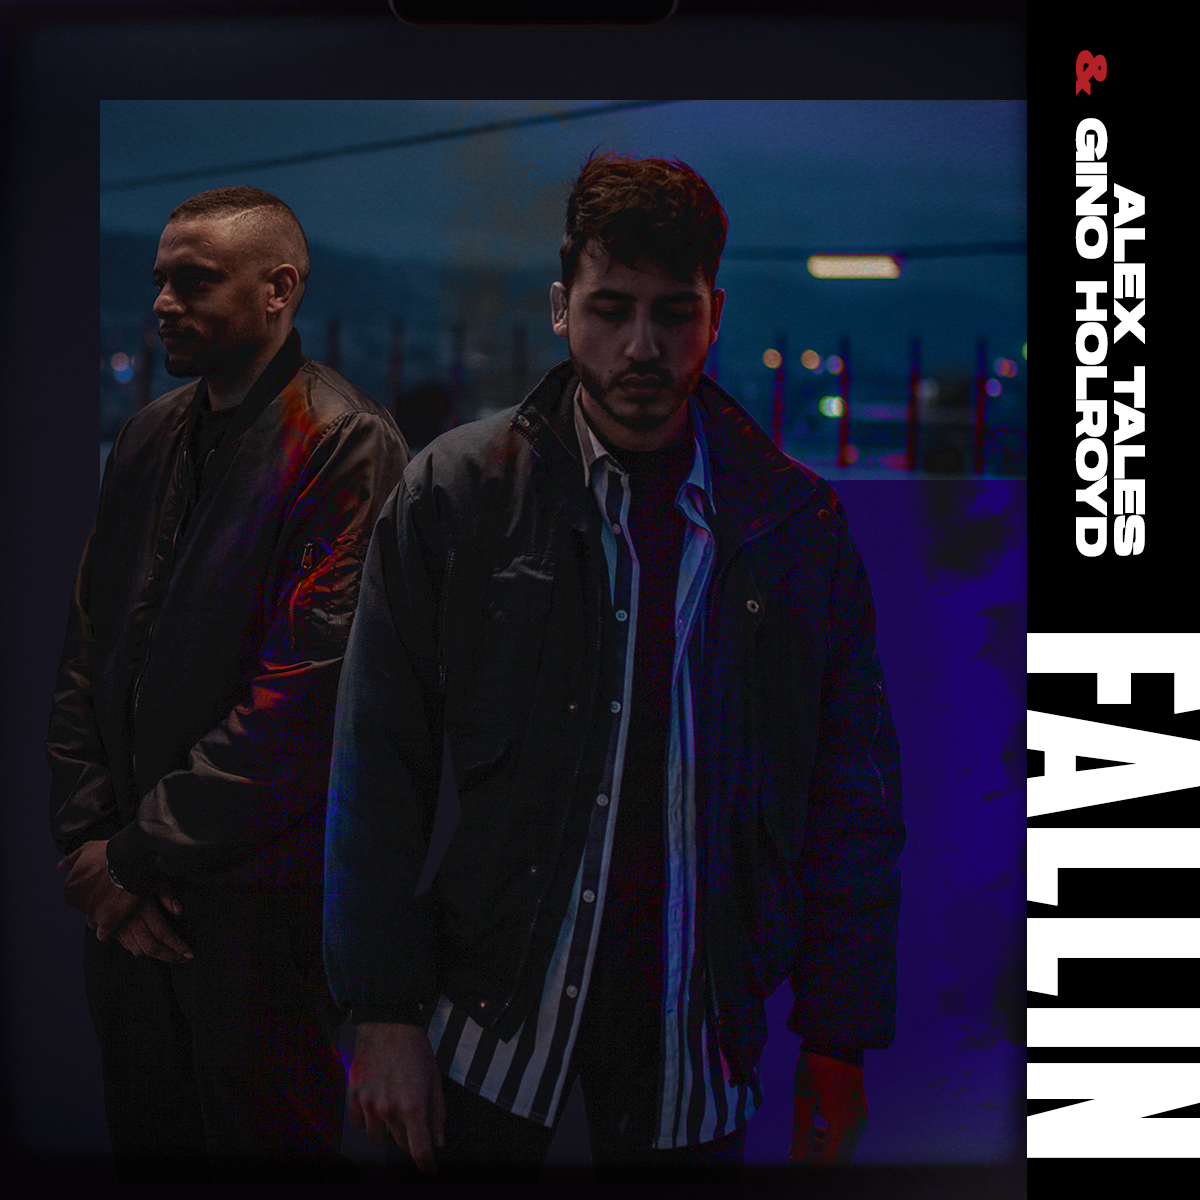 """French Artist Alex Tales Teams Up With Gino Holroyd for """"Fallin"""""""